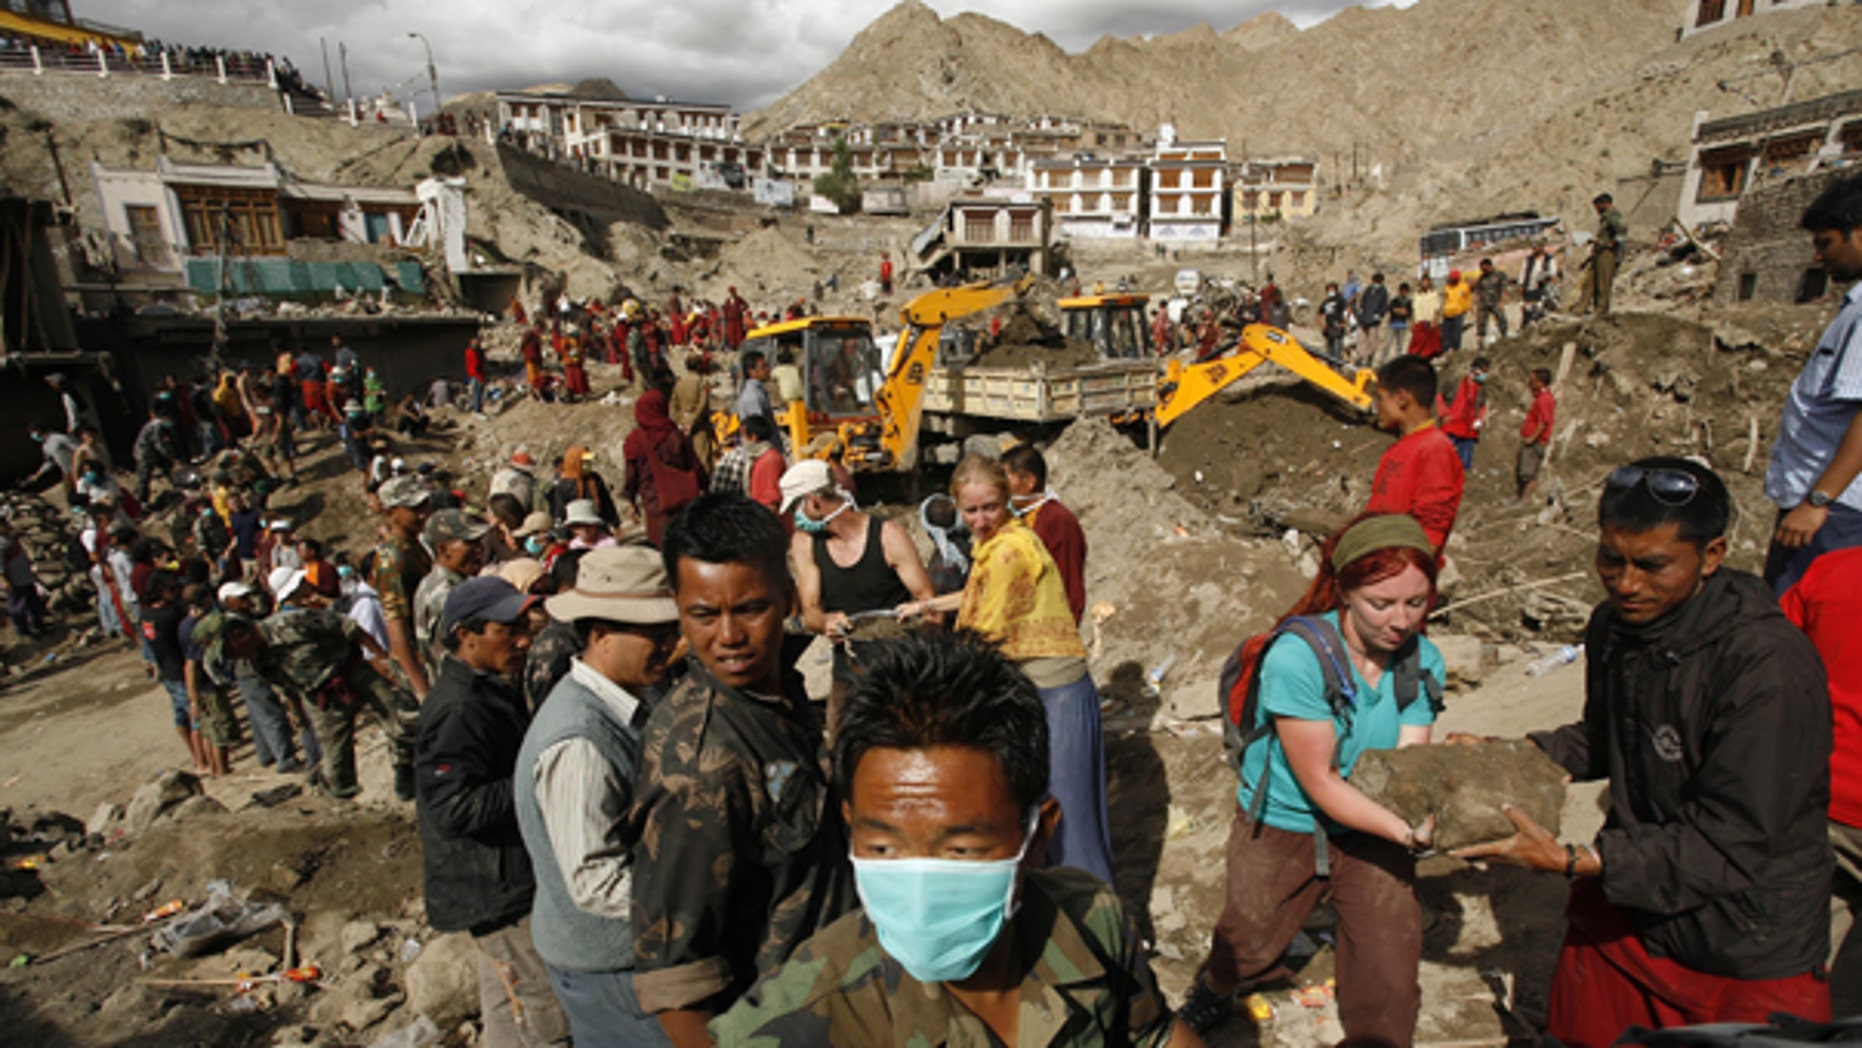 Aug. 7: Foreign tourists assist locals in removing debris from a flash flood-affected area of Leh, India. Authorities stepped up rescue efforts as the weather improved Saturday, a day after flash floods sent rivers of mud down desert mountainsides in Indian-controlled Kashmir, killing scores of people and injuring hundreds, officials said.